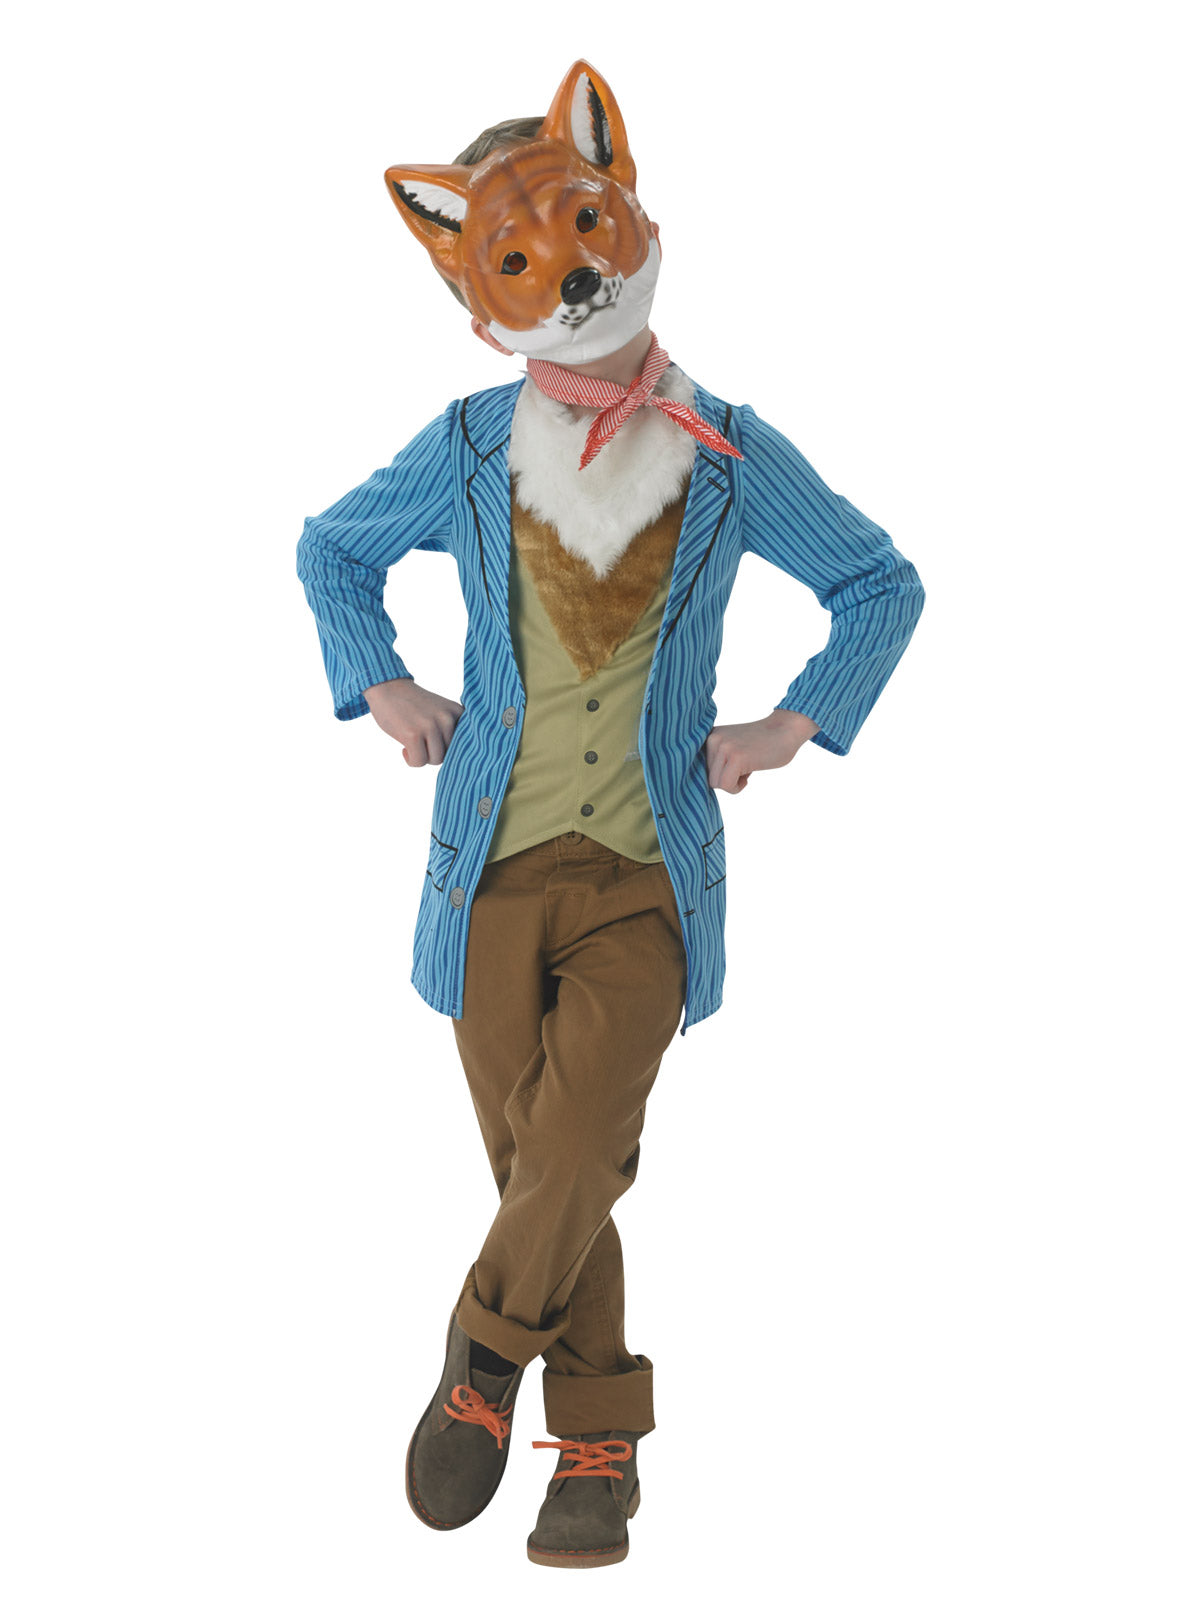 Fantastic Mr Fox Roald Dahl Deluxe Child Costume  - Buy Online Only